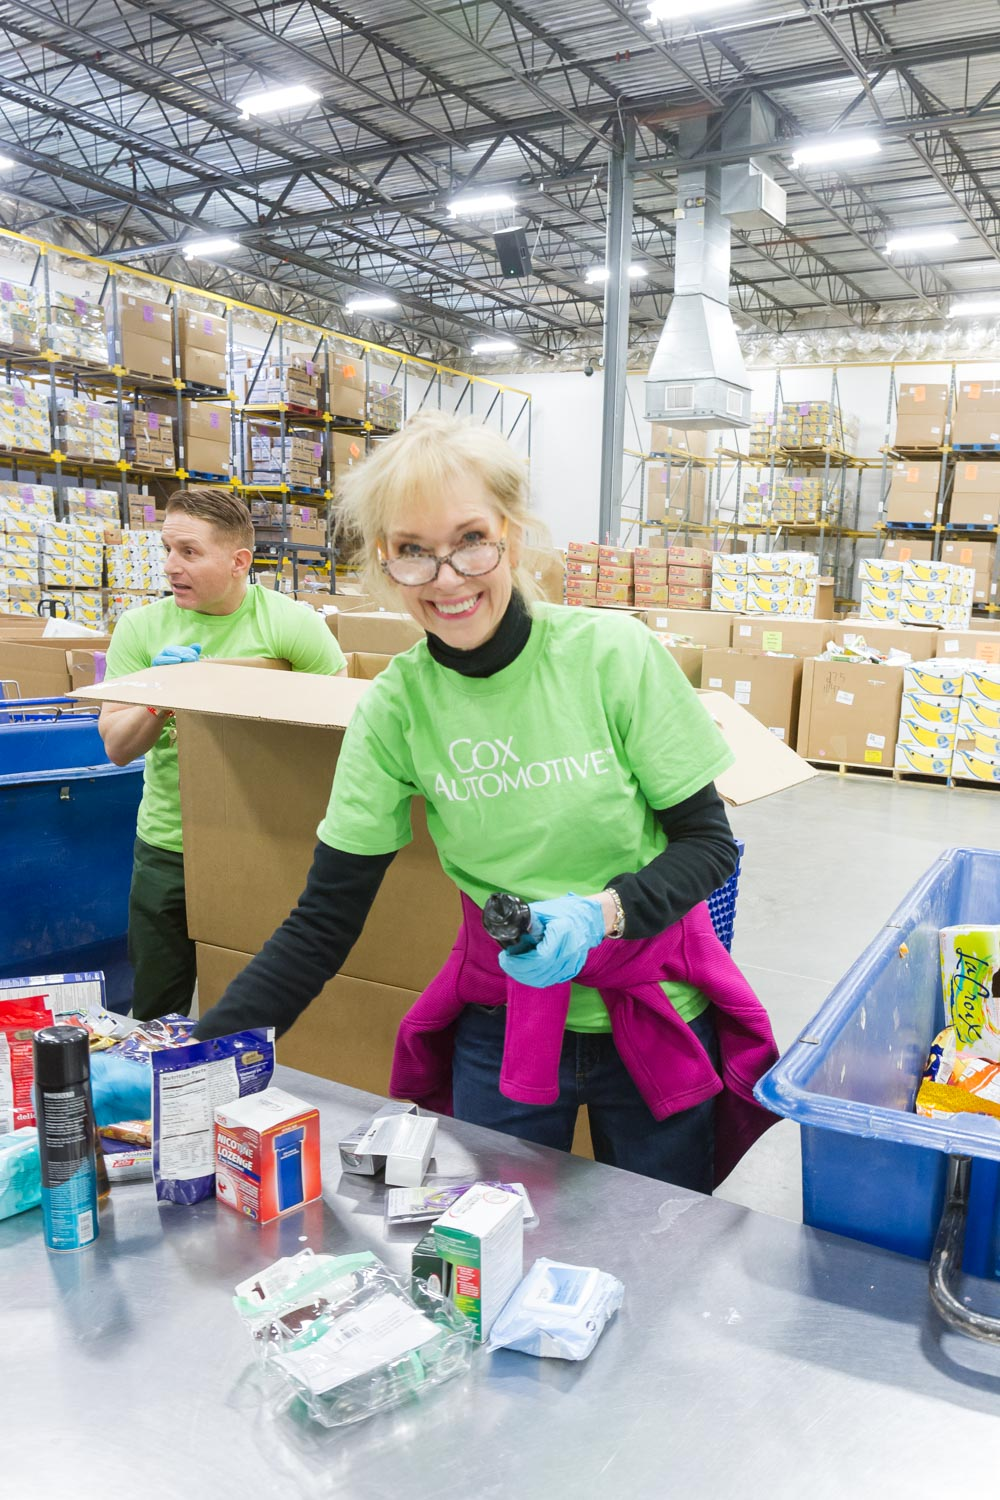 W_3-17-2017 Atlanta Community Food Bank-9.jpg